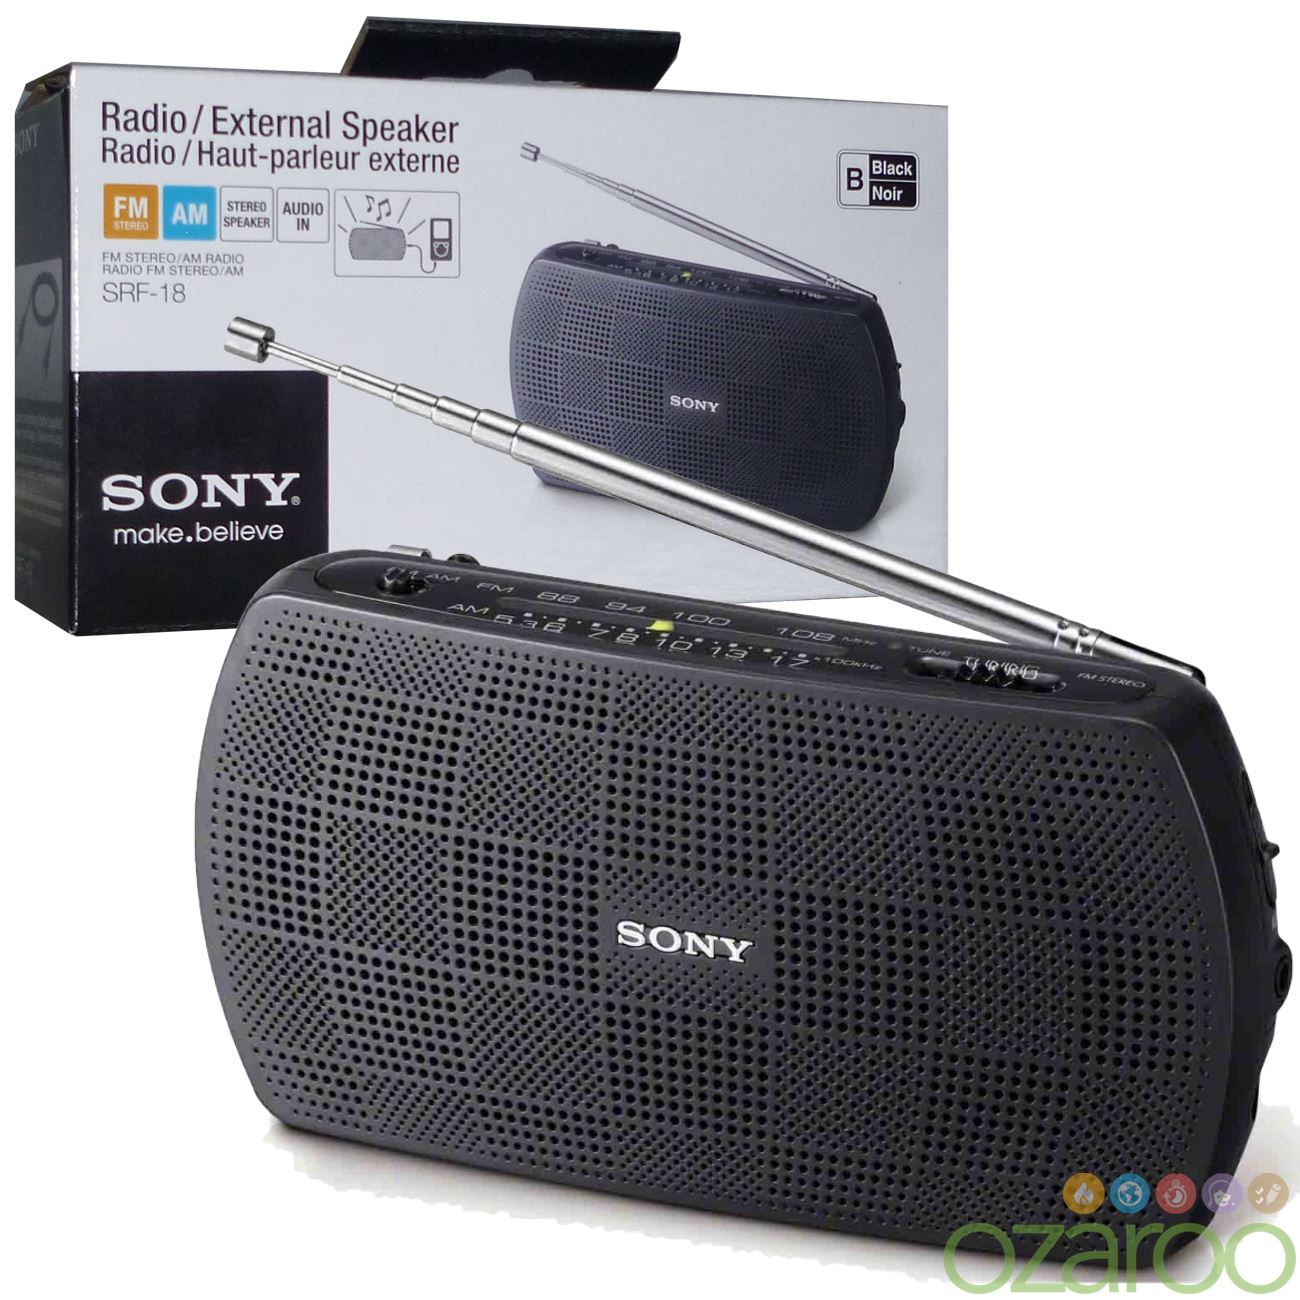 Radio Portable Yamaha Gree Portable Air Conditioner 6000 Btu Review Xtreme Portable Phone Charger Portable Bluetooth Speaker Karaoke: Sony AM FM Stereo Modern Portable Travel Battery Powered